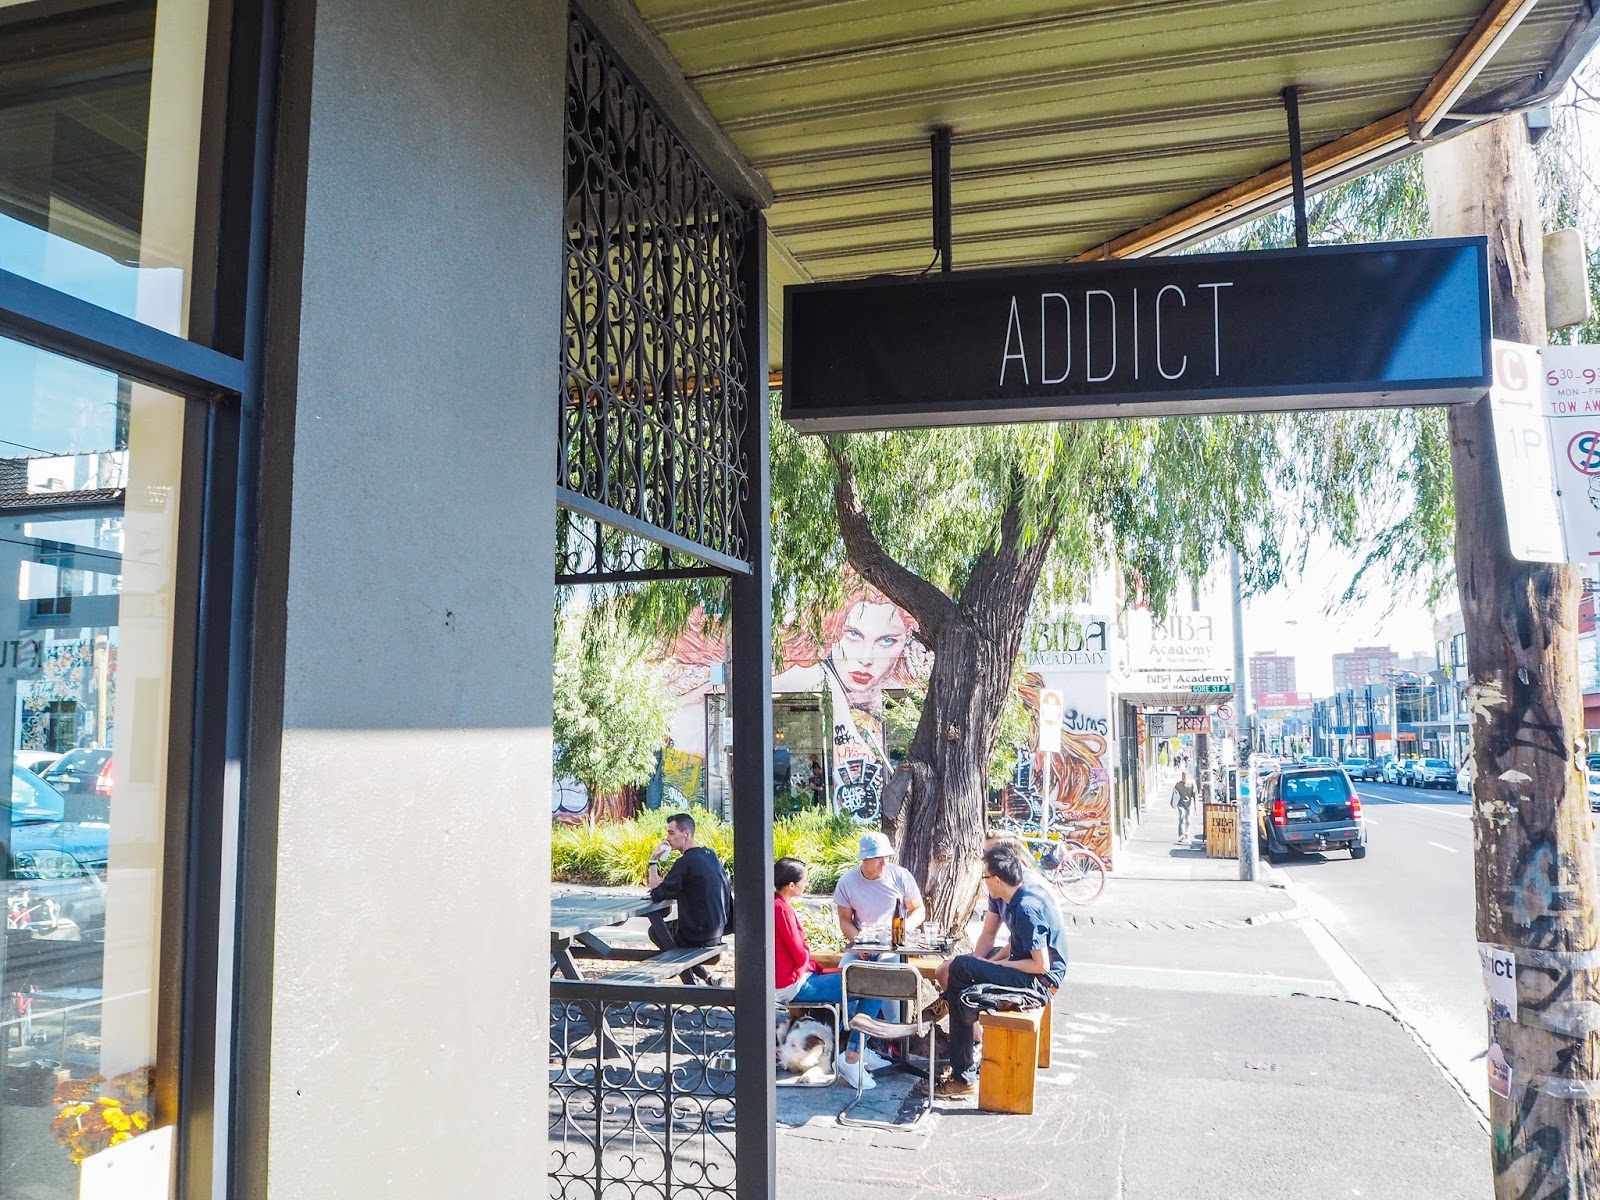 Addict coffee shop, Melbourne